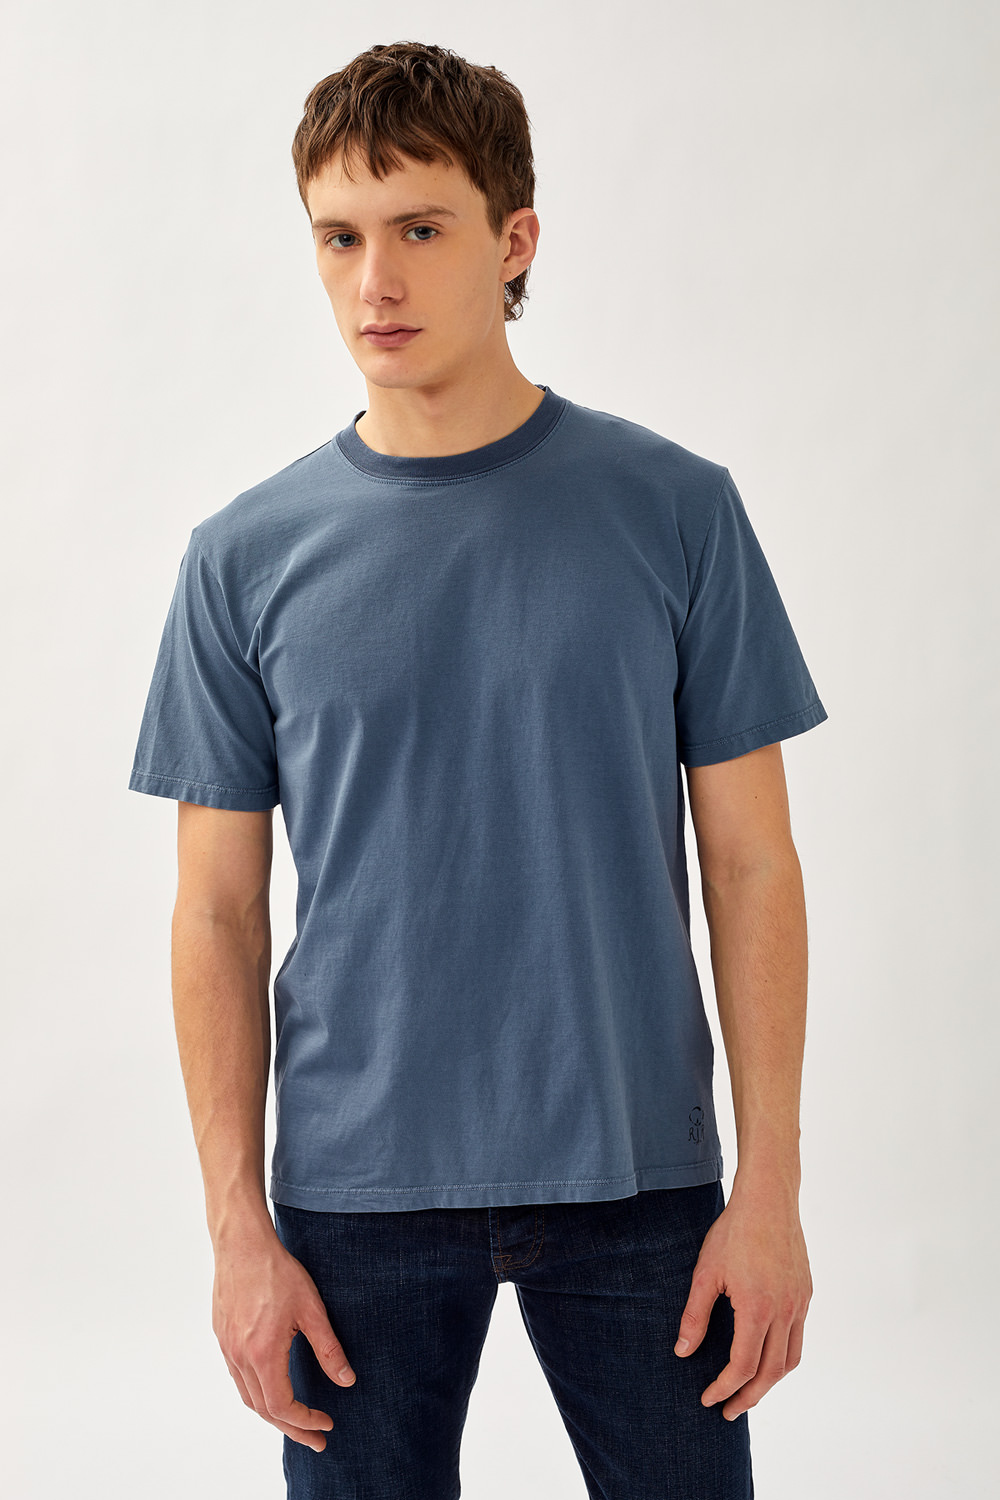 ROY ROGERS: T-SHIRT IN COTONE ORGANICO